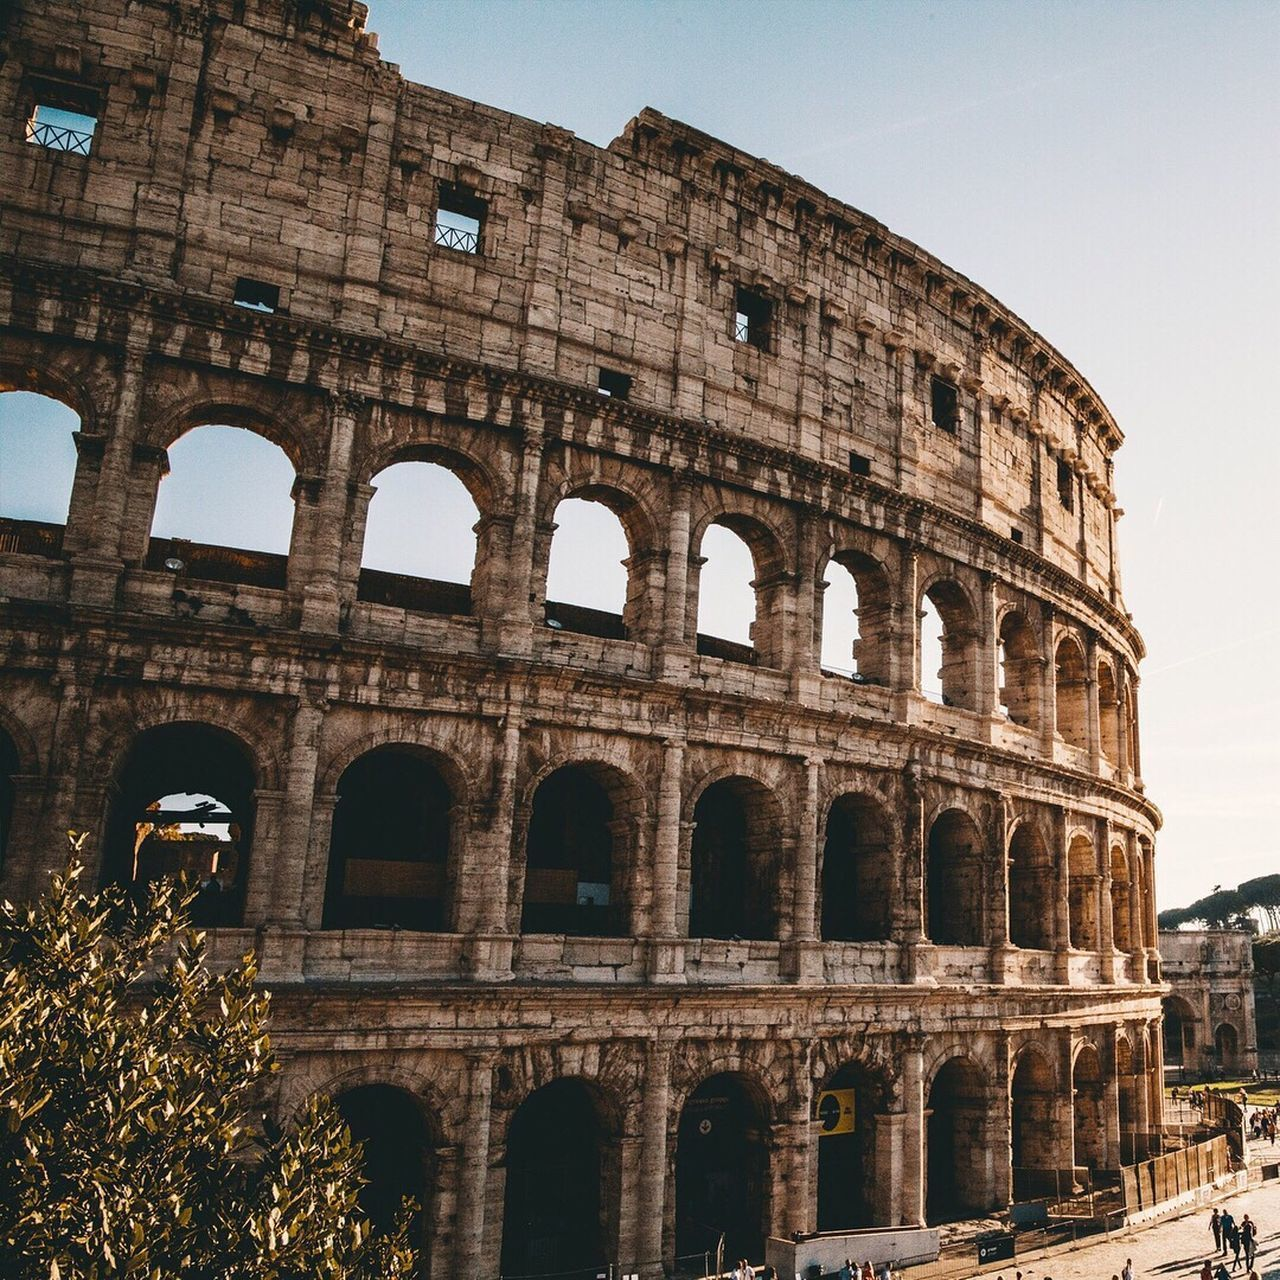 history, old ruin, amphitheater, architecture, the past, ancient, arch, built structure, travel destinations, tourism, ancient civilization, travel, building exterior, archaeology, arts culture and entertainment, low angle view, outdoors, sky, day, no people, tree, clear sky